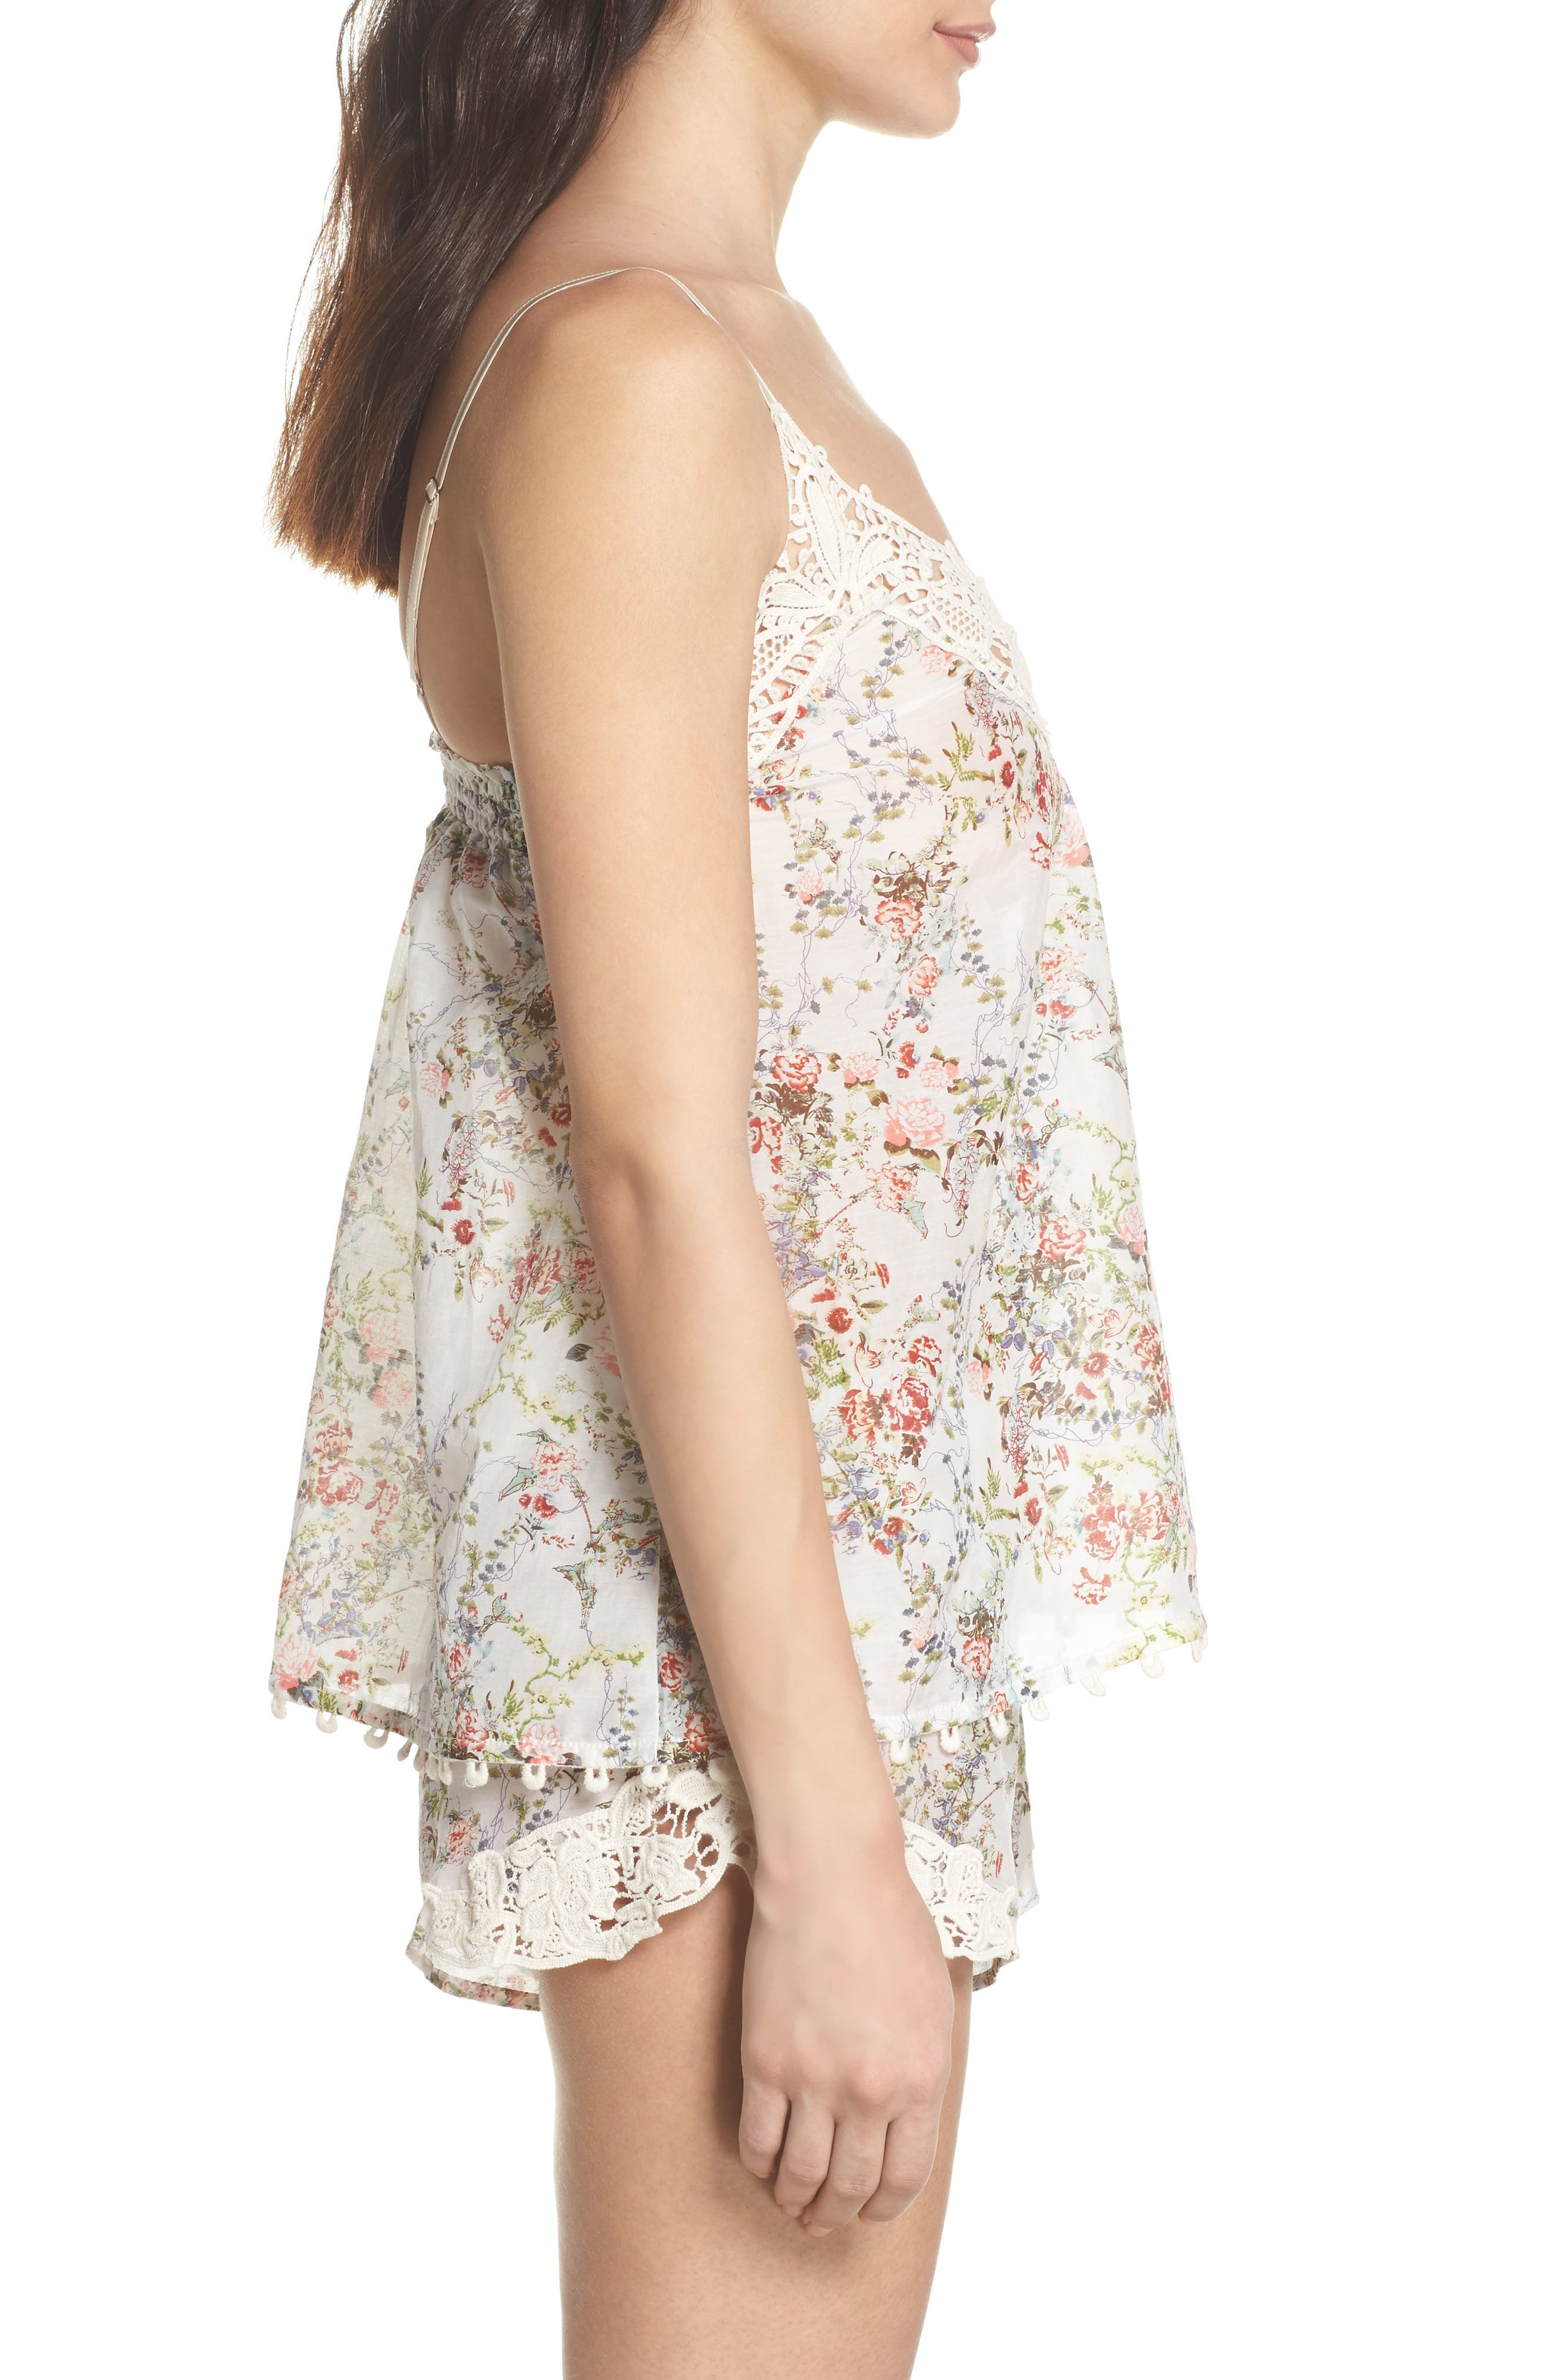 Yolly Camisole,                             Alternate thumbnail 3, color,                             IVORY FLORAL